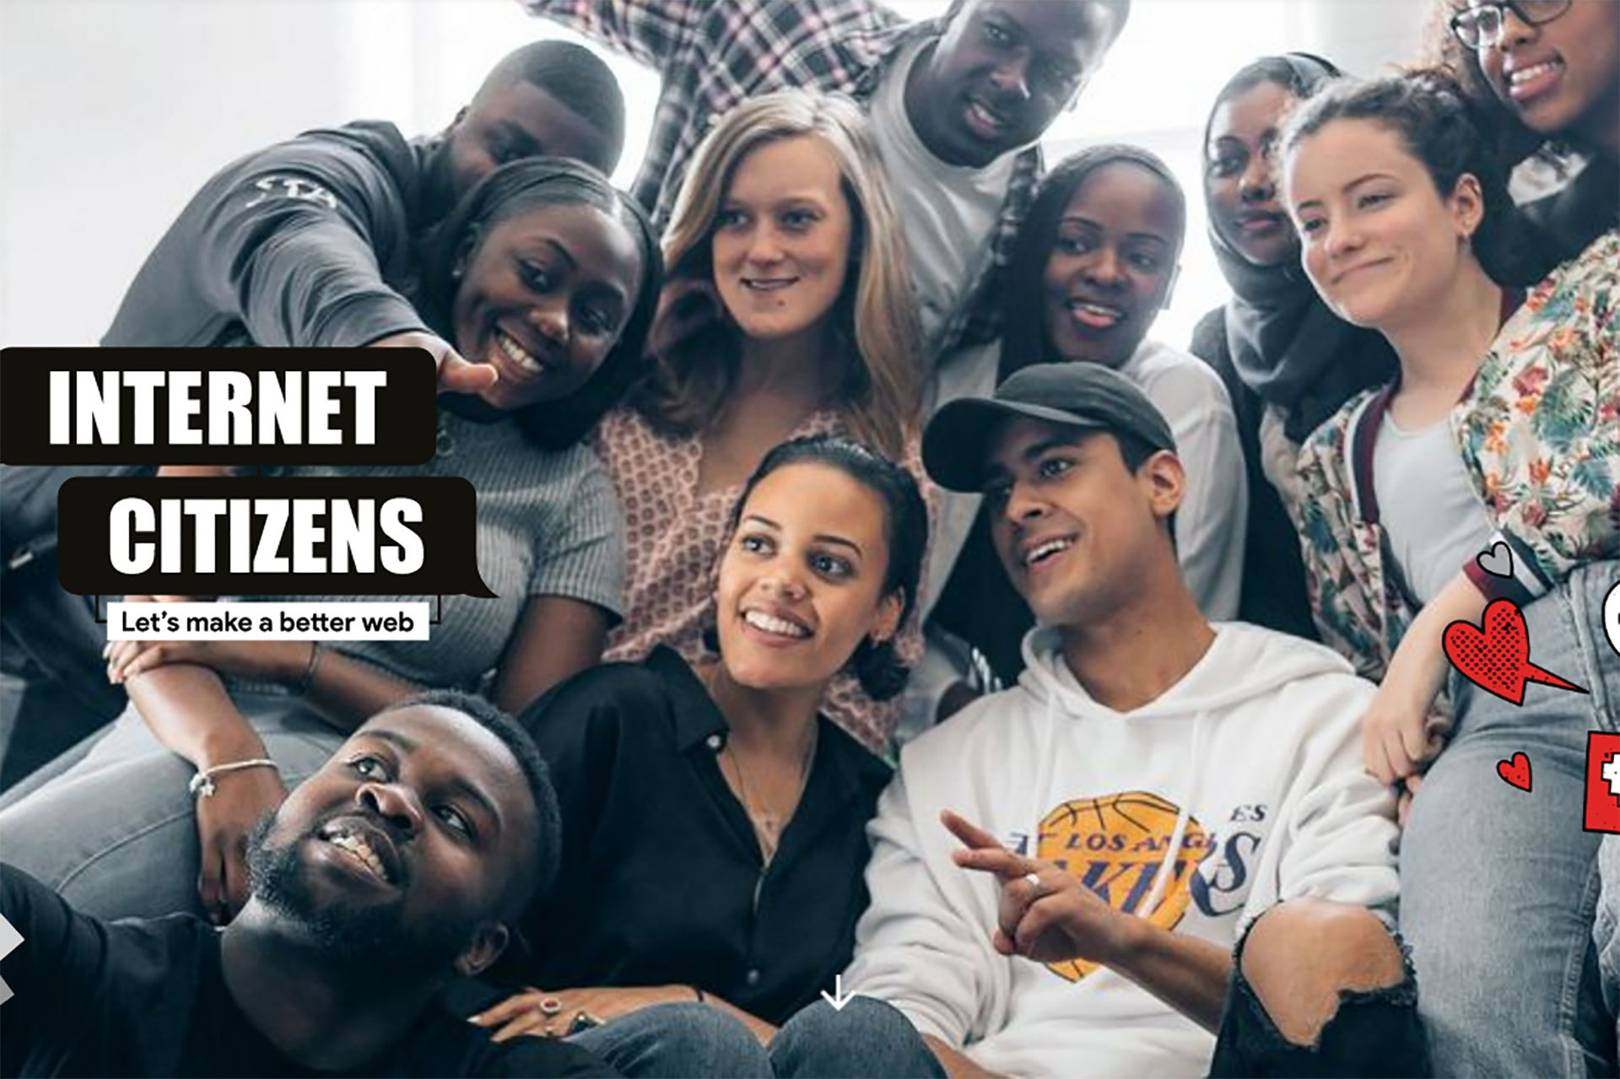 youtube launches uk programme to create better internet citizens